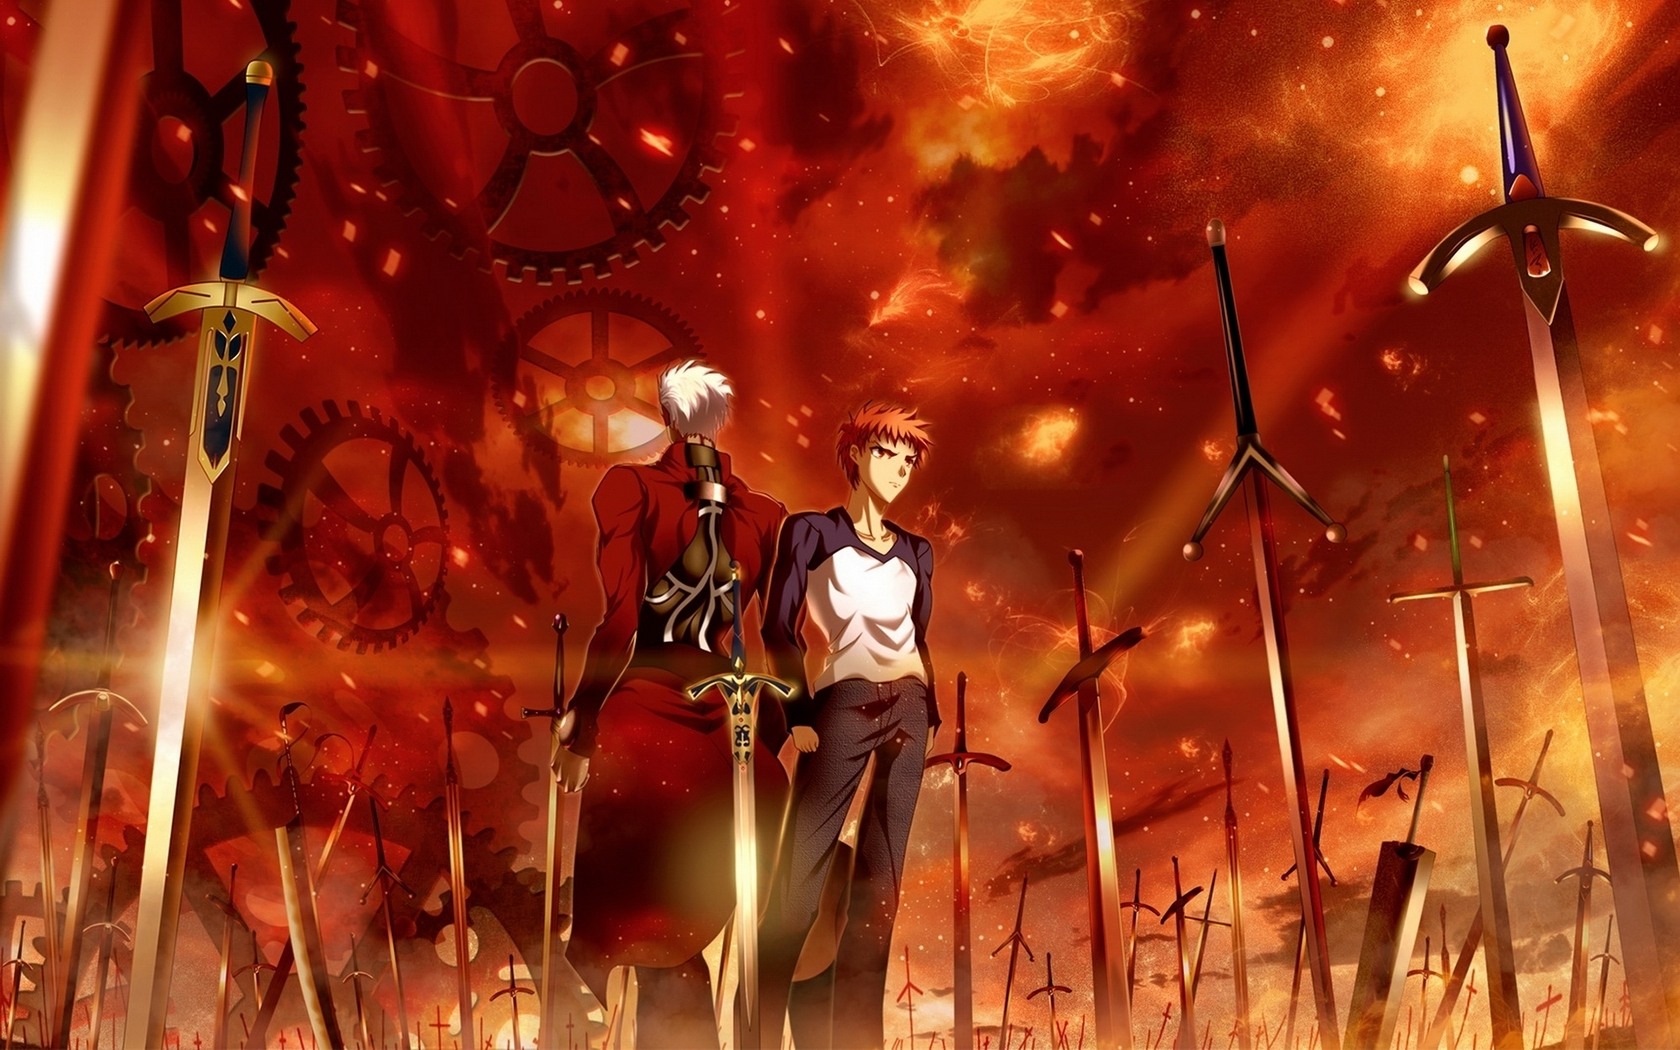 120 fate/stay night: unlimited blade works hd wallpapers